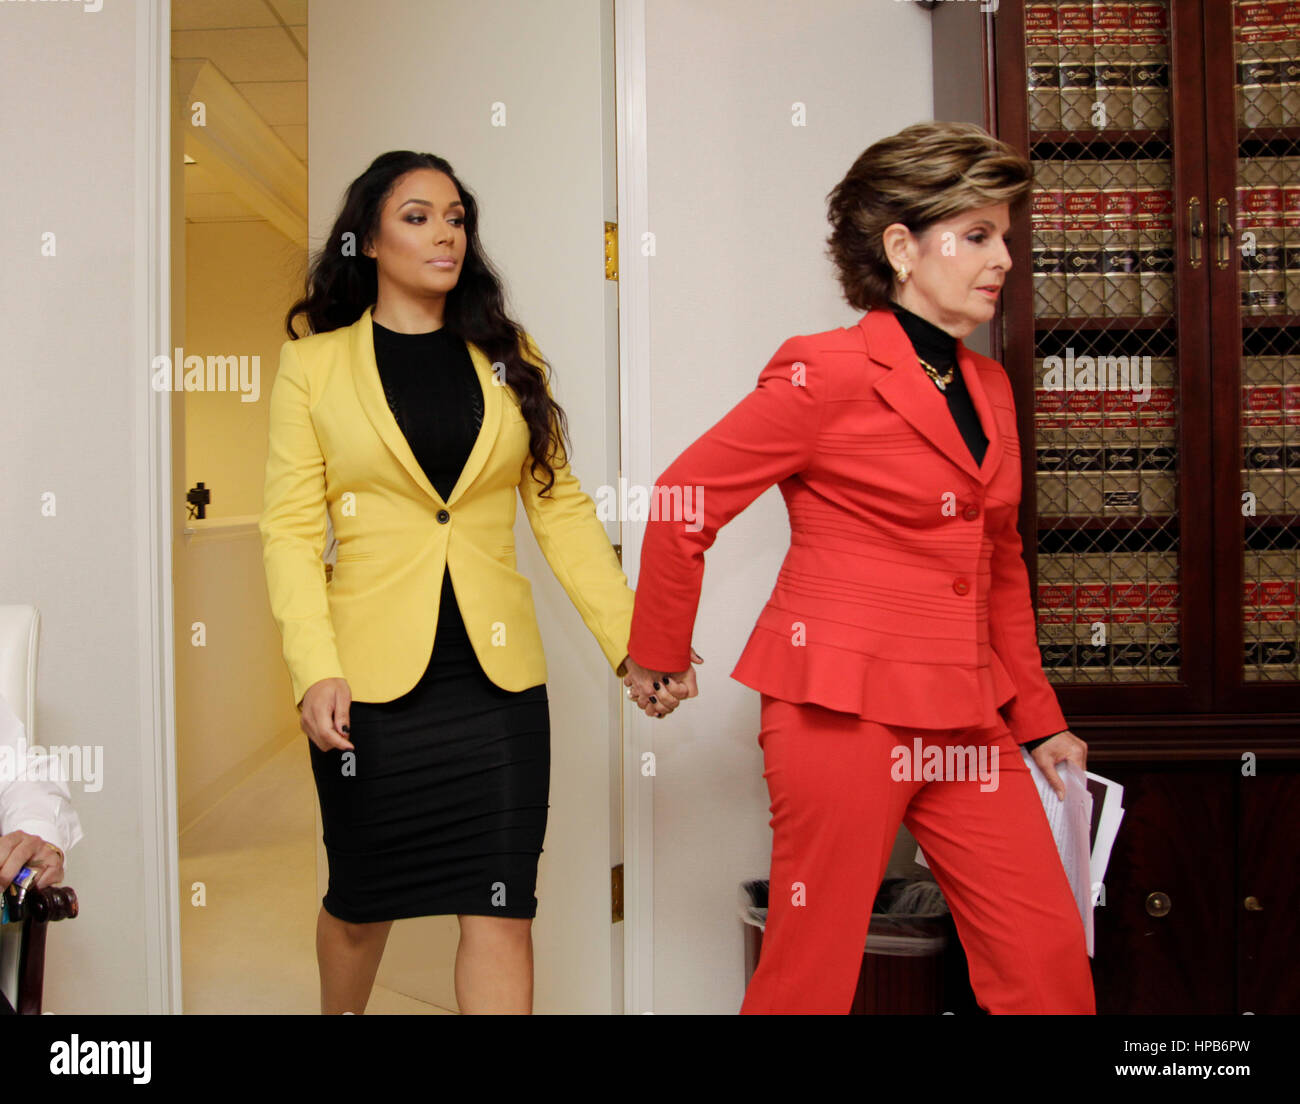 Attorney Gloria Allred, in red, and Shantel Jackson during a